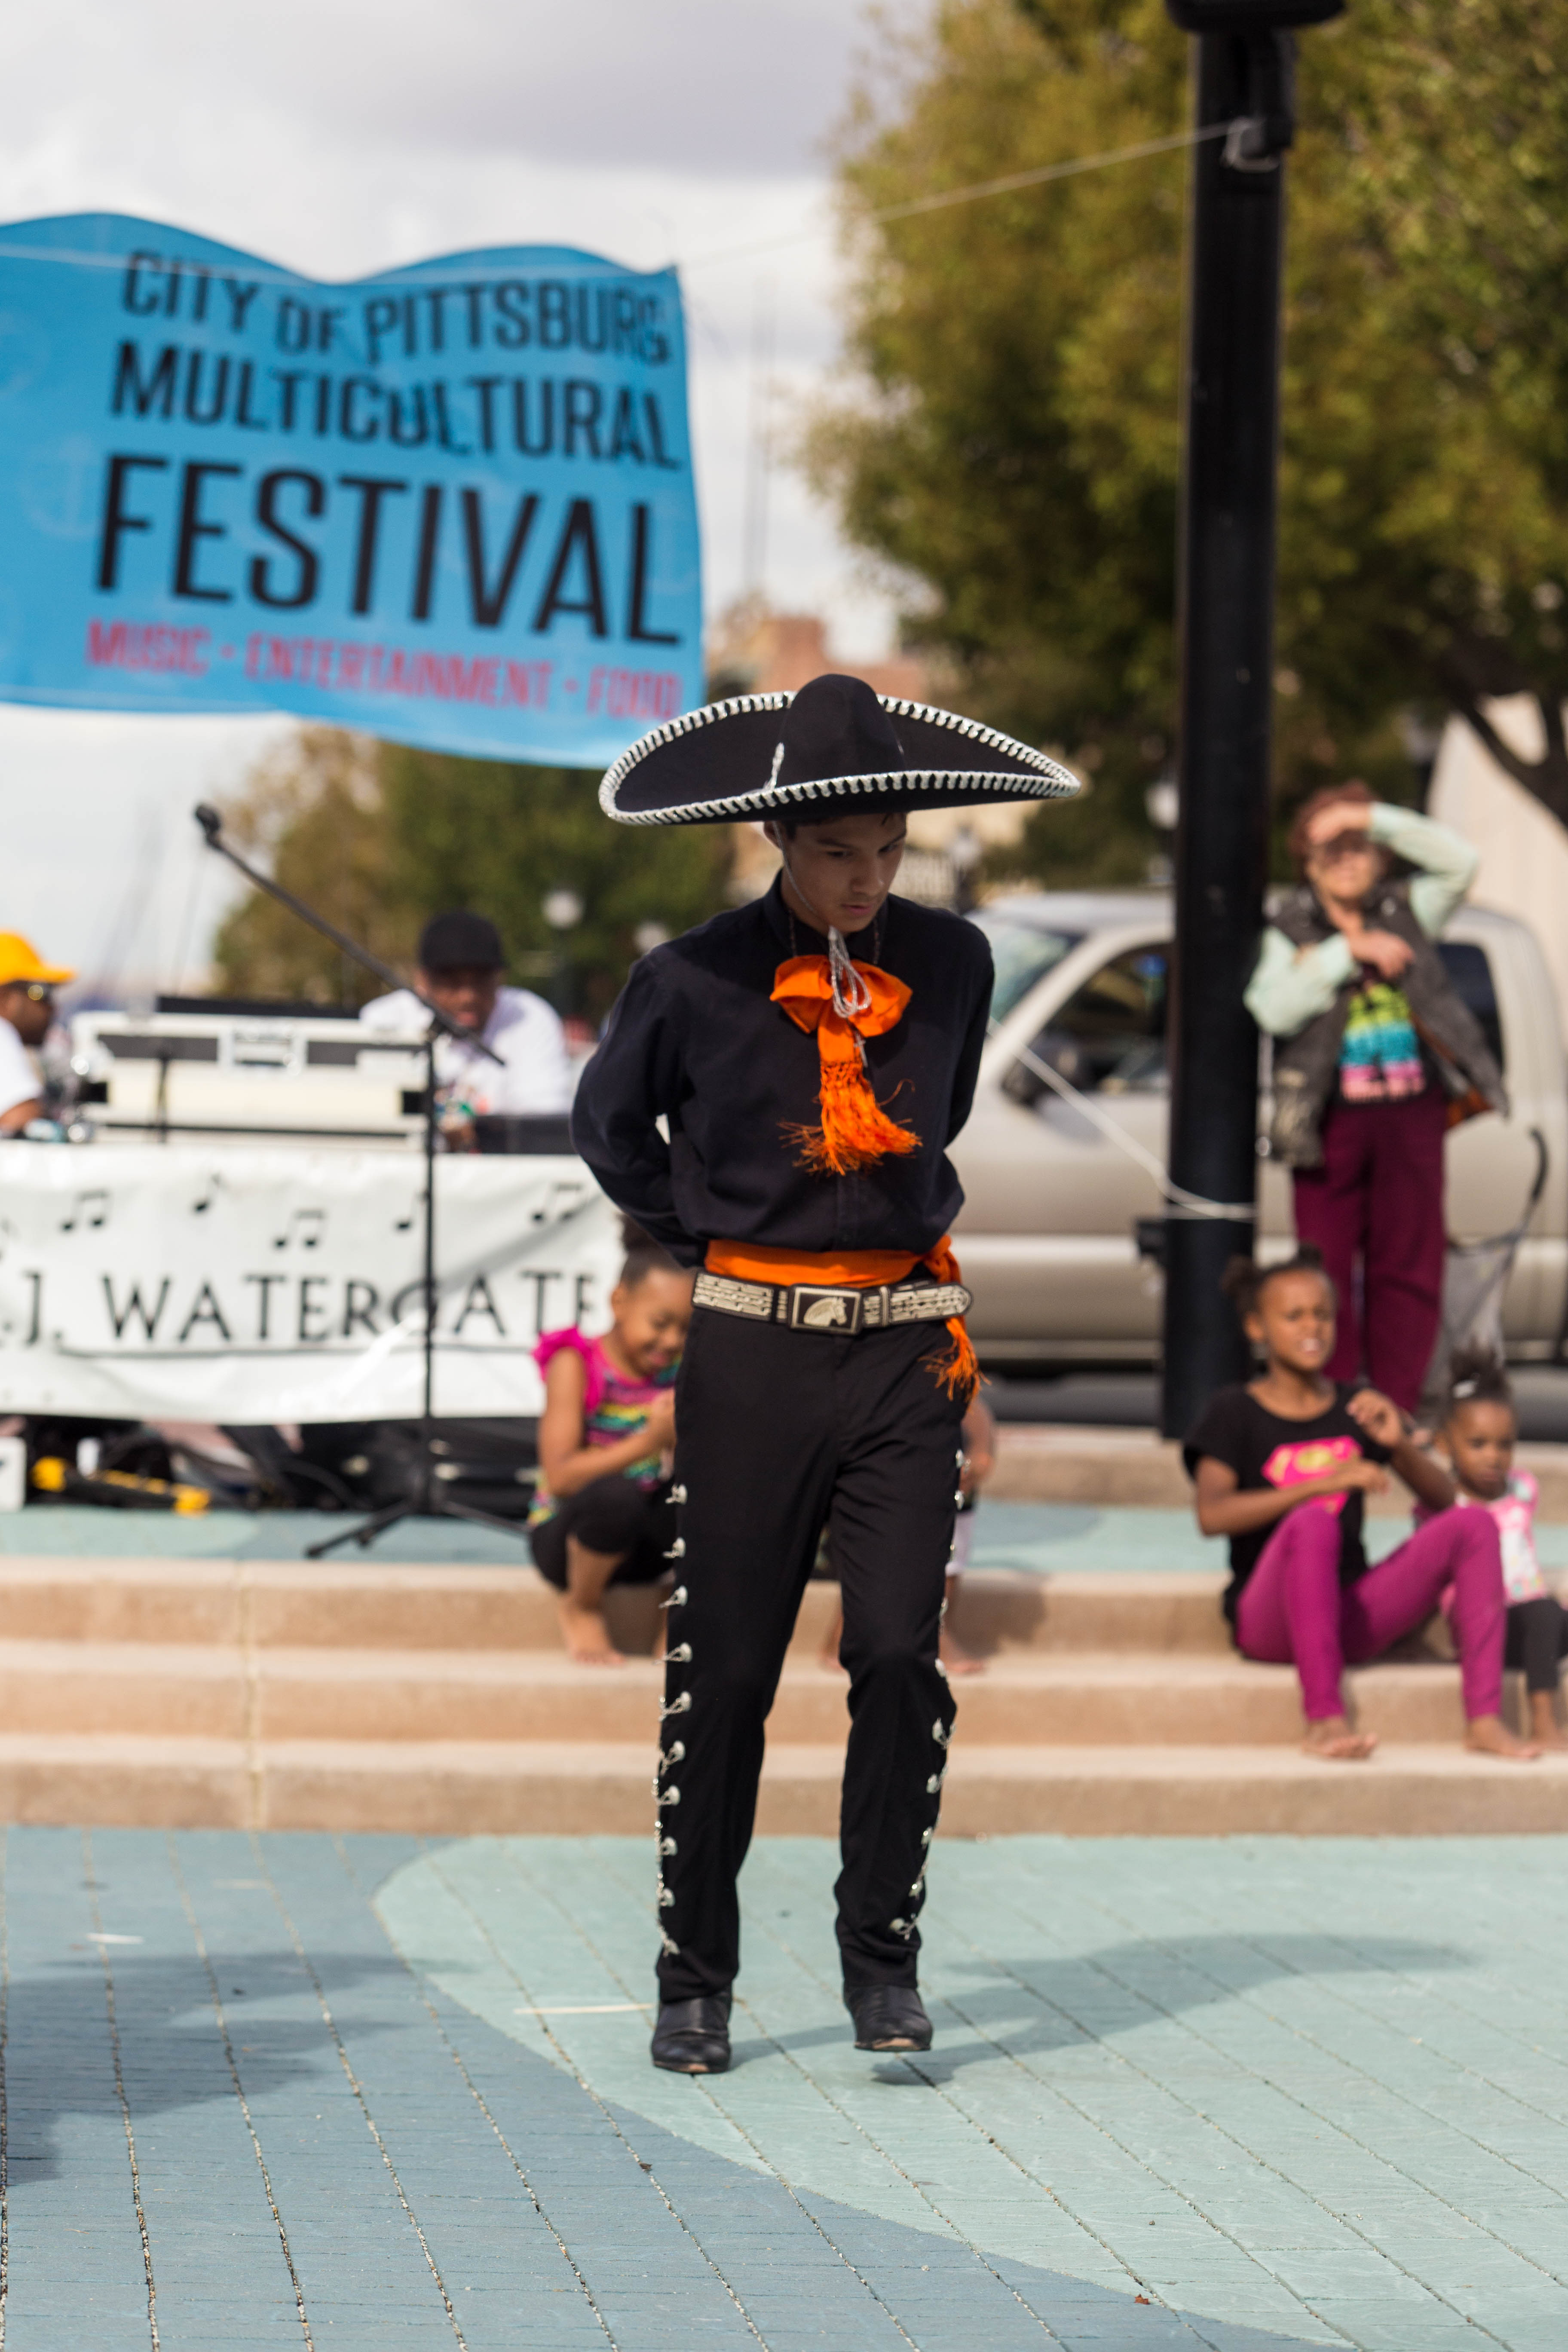 CITY_PITTSBURG_MULTICULTURAL_OCTOBER_2016 (620)